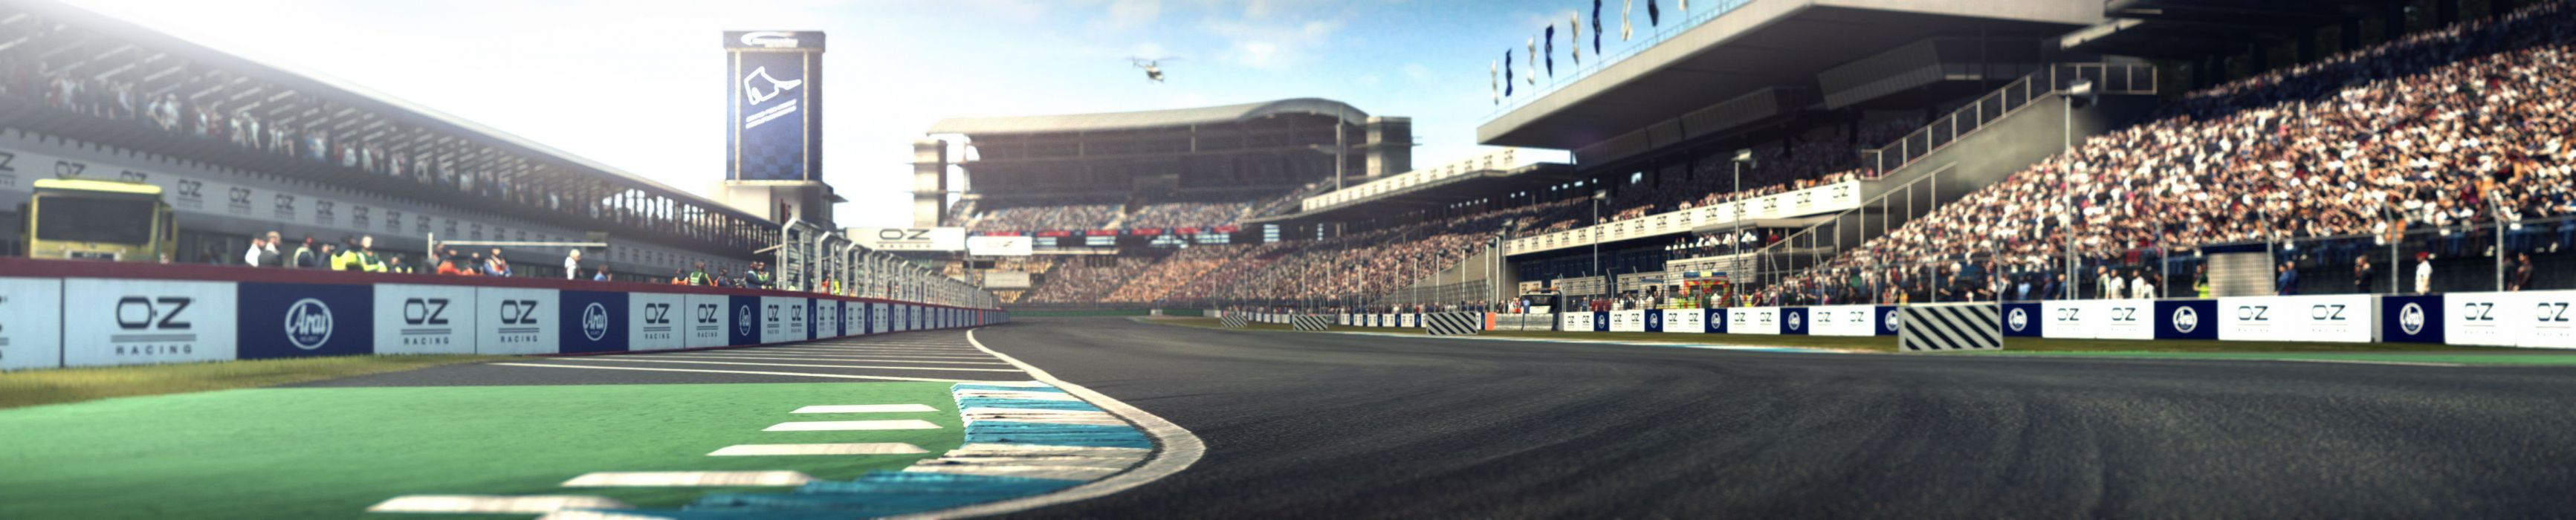 GRID AUTOSPORT racing race auto game action open-wheel tuning supercar (21) wallpaper